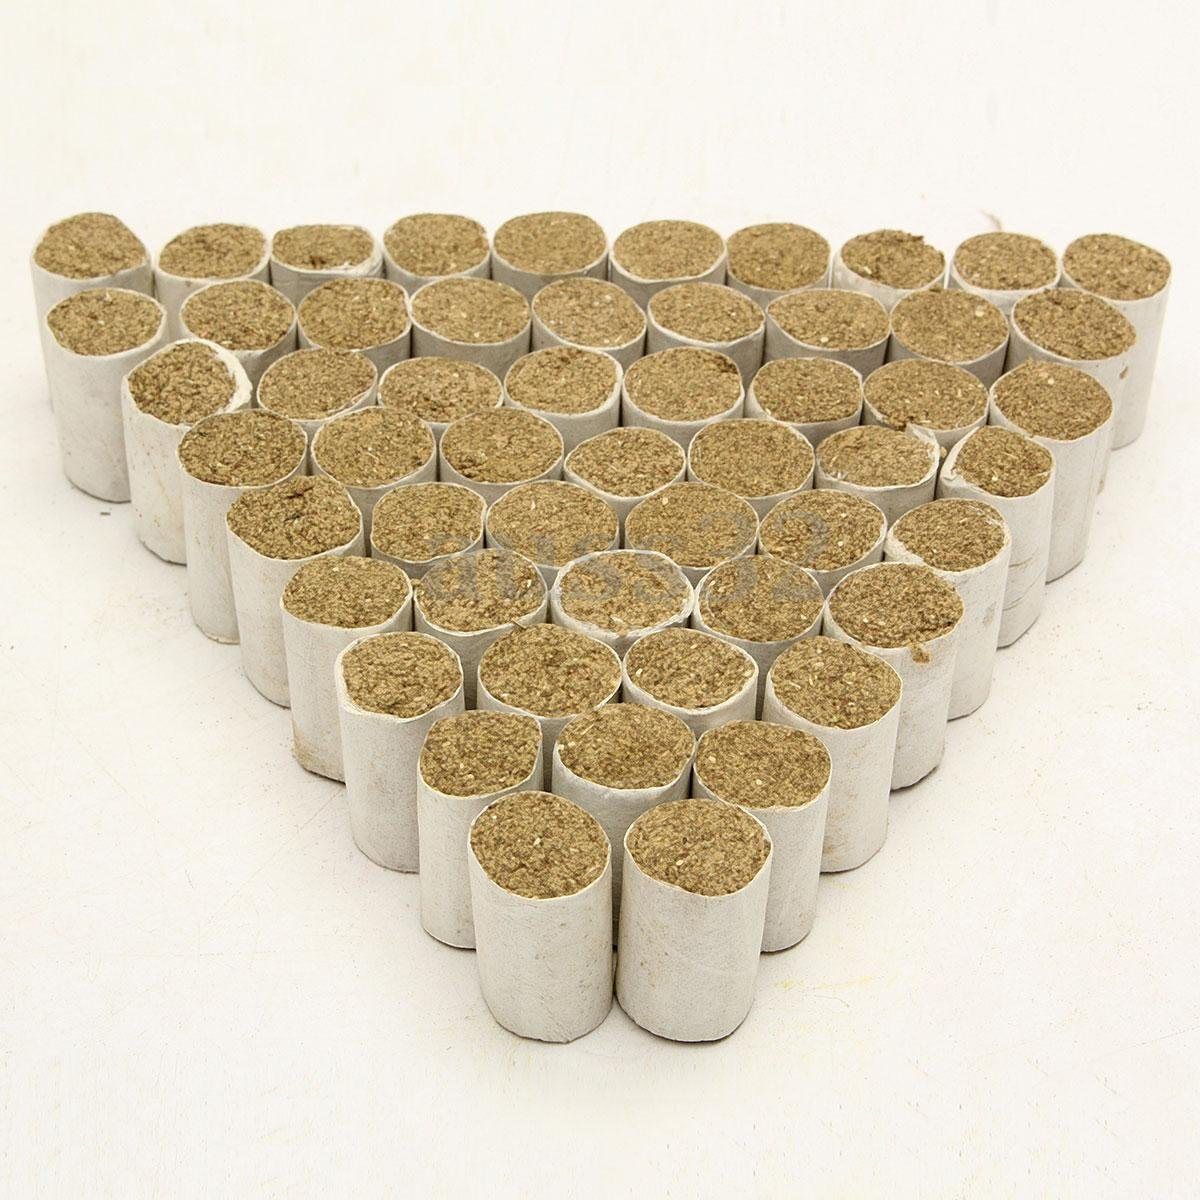 Gooday 54 PCS/lot Bee Hive Smoker Solid Fuel Beekeeping Tool Chinese Medicinal Herb Smoke Honey Produce Bee-Specific Smoke Bombs, Single Size:18mm x30mm